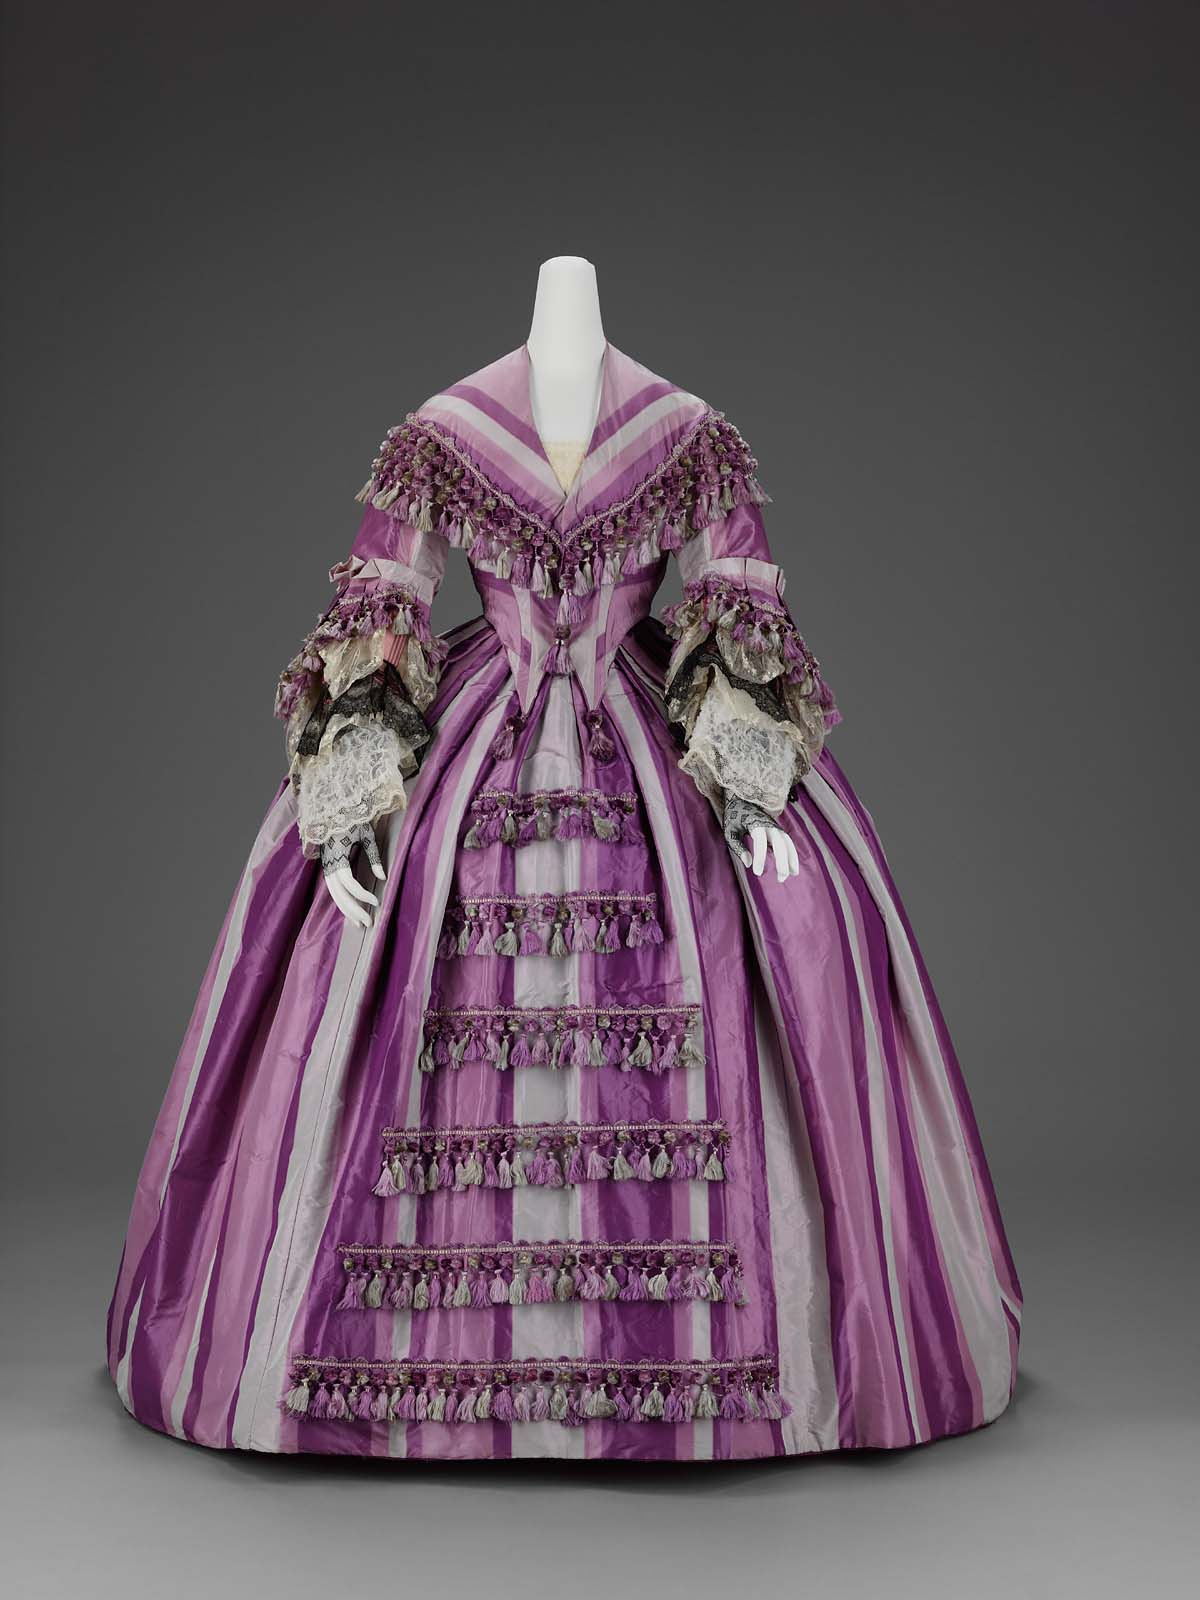 Purple ombre triped silk dress, late 1850s, from the Museum of Fine Arts, Boston